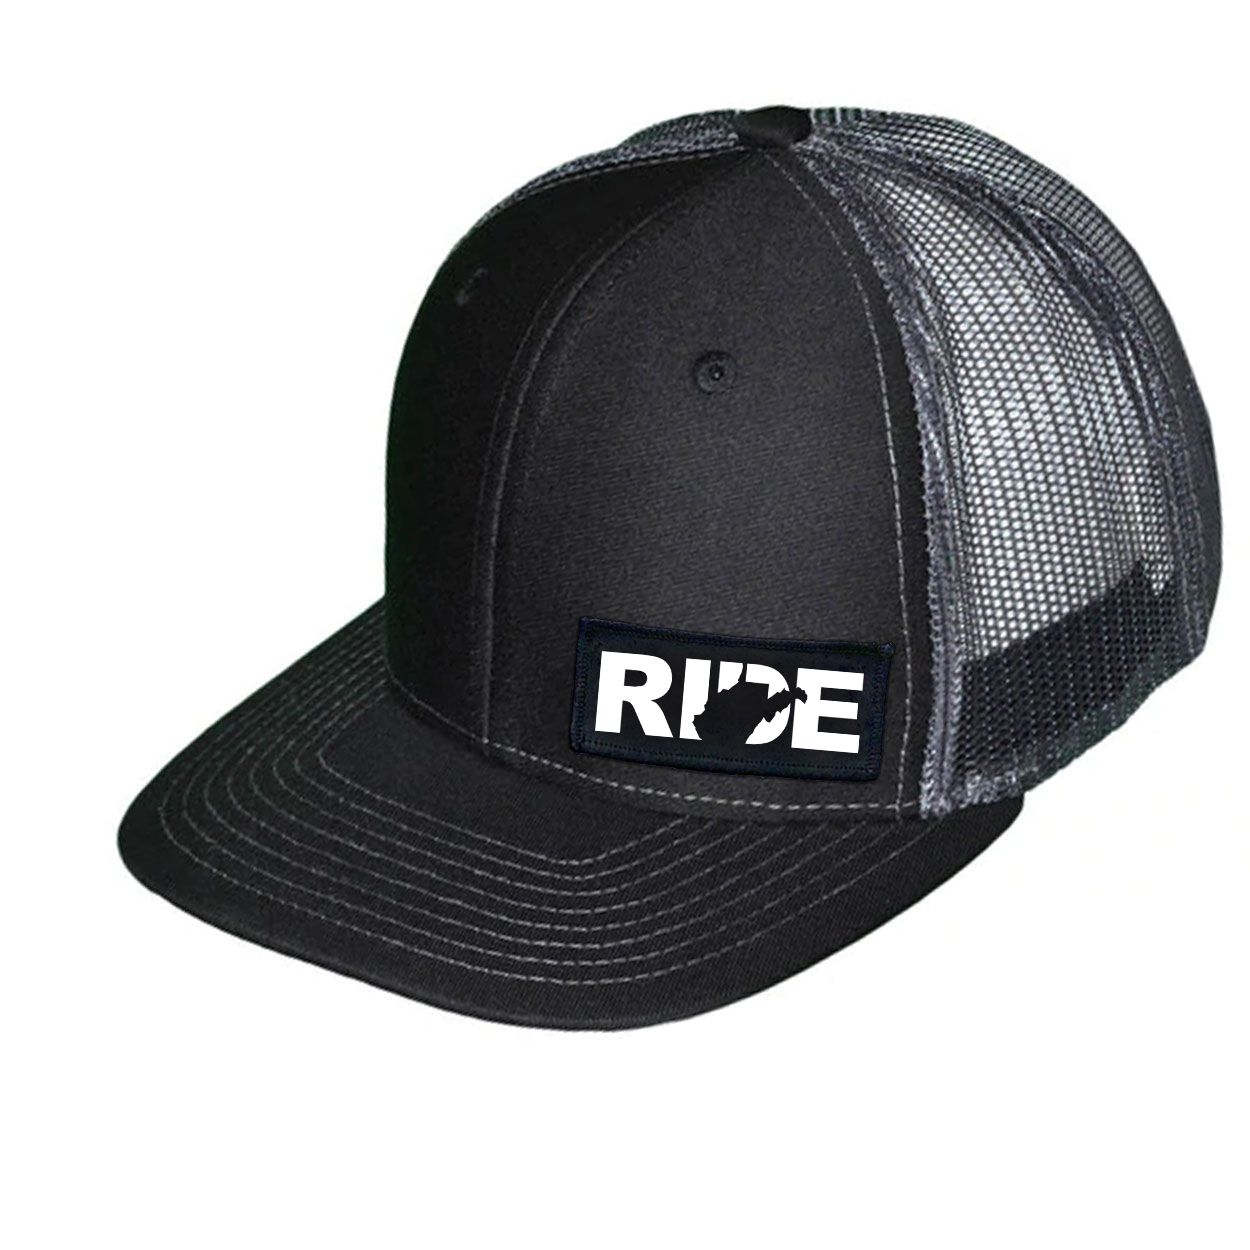 Ride West Virginia Night Out Woven Patch Snapback Trucker Hat Black/Dark Gray (White Logo)